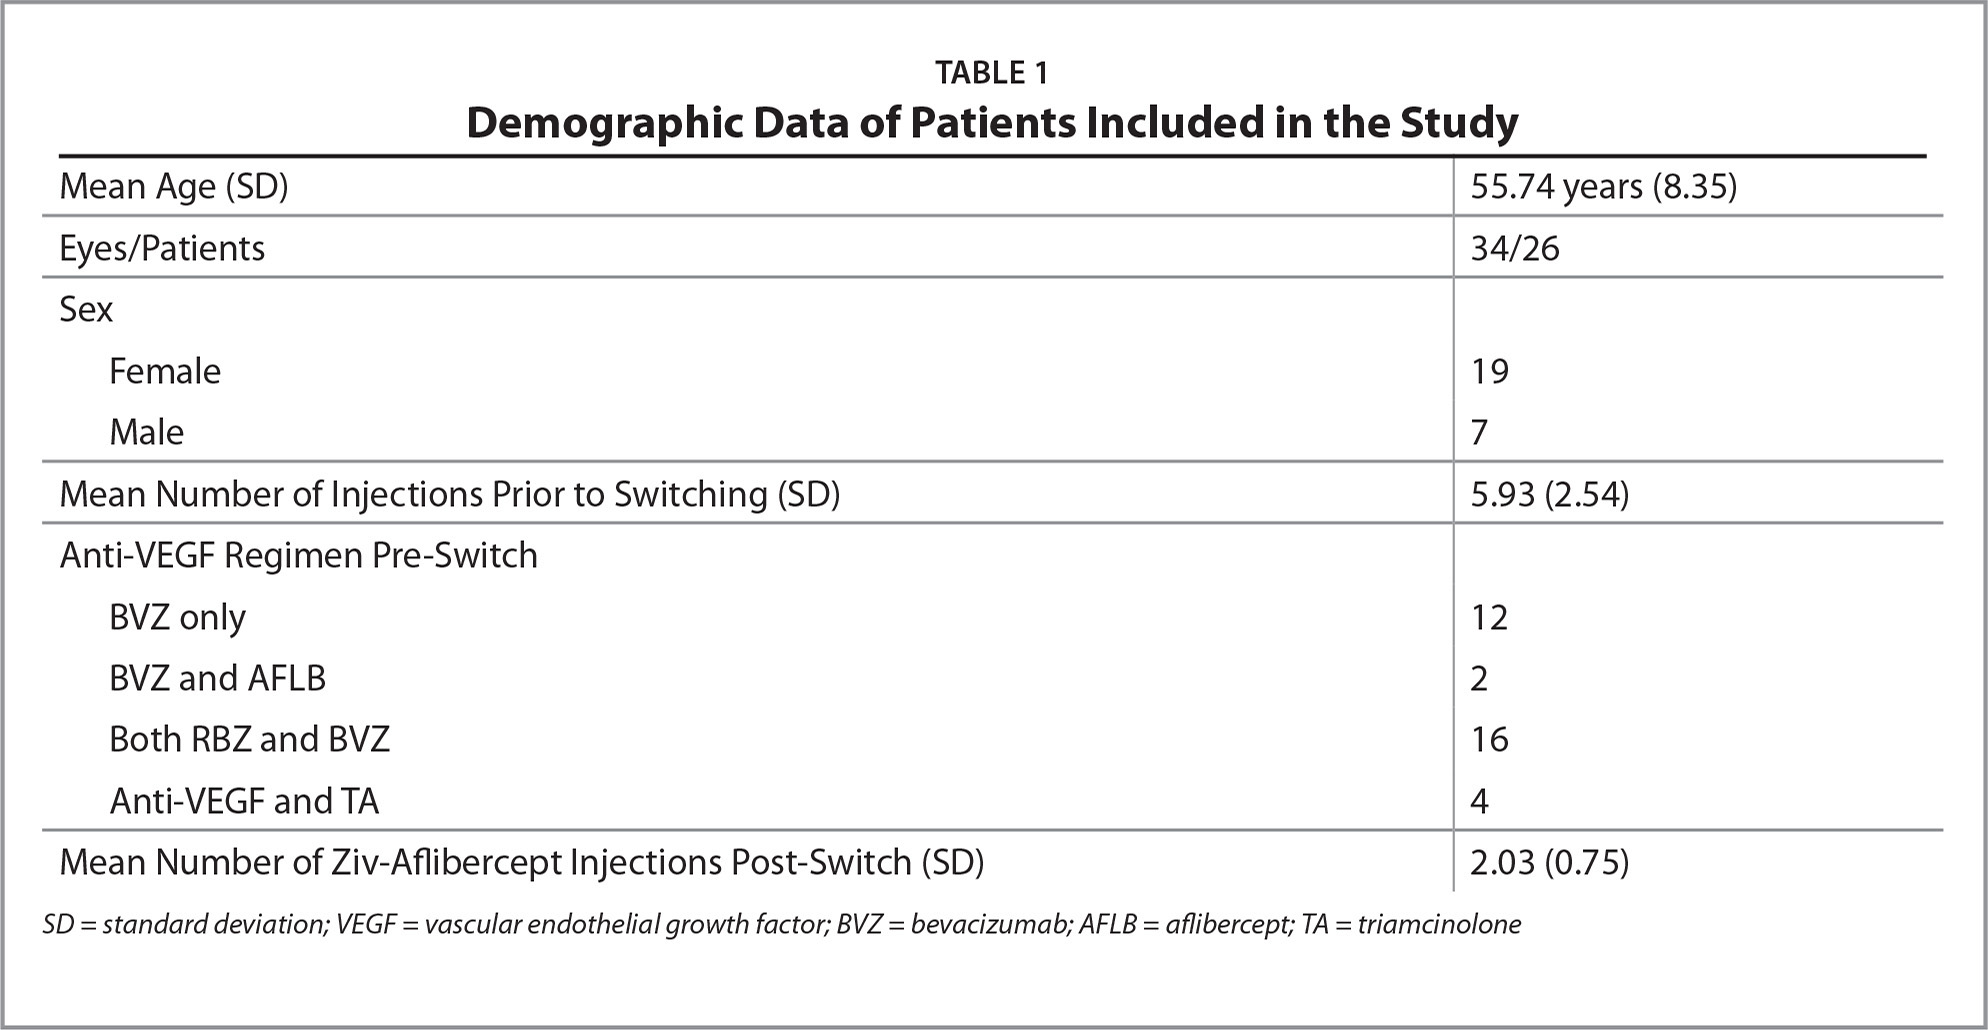 Demographic Data of Patients Included in the Study